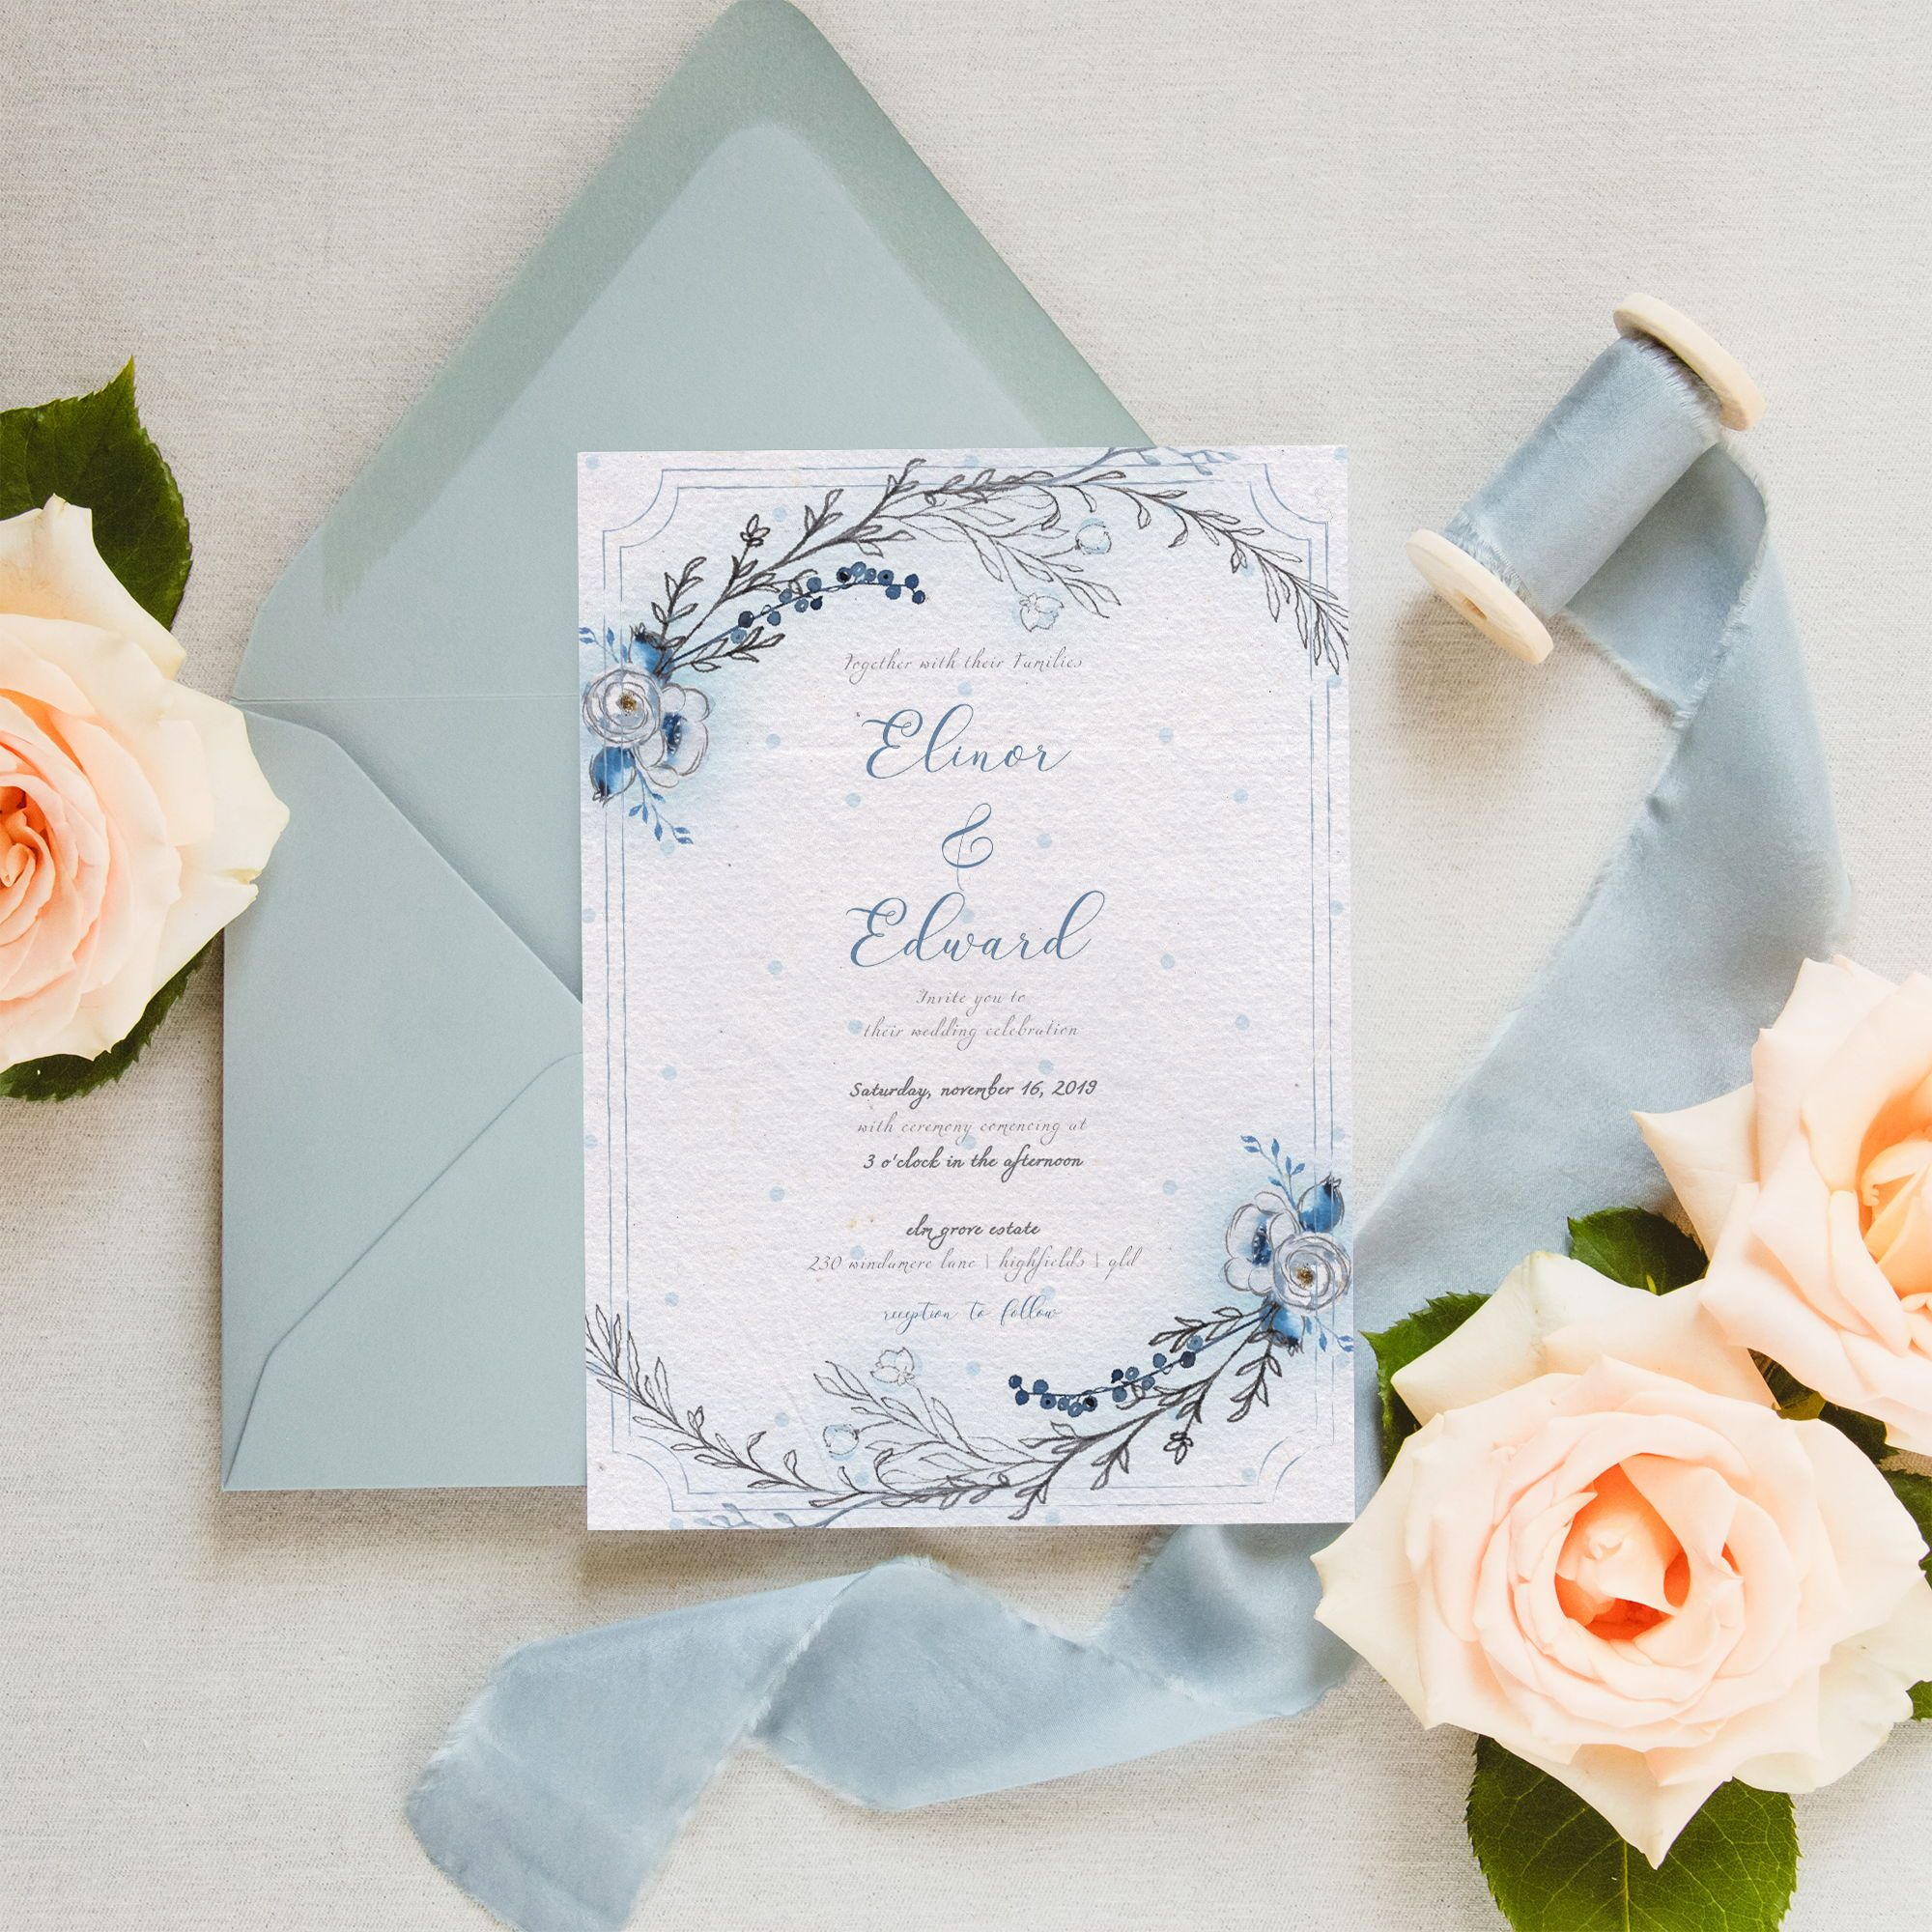 Elinor Rose's Deco Wrap invitation